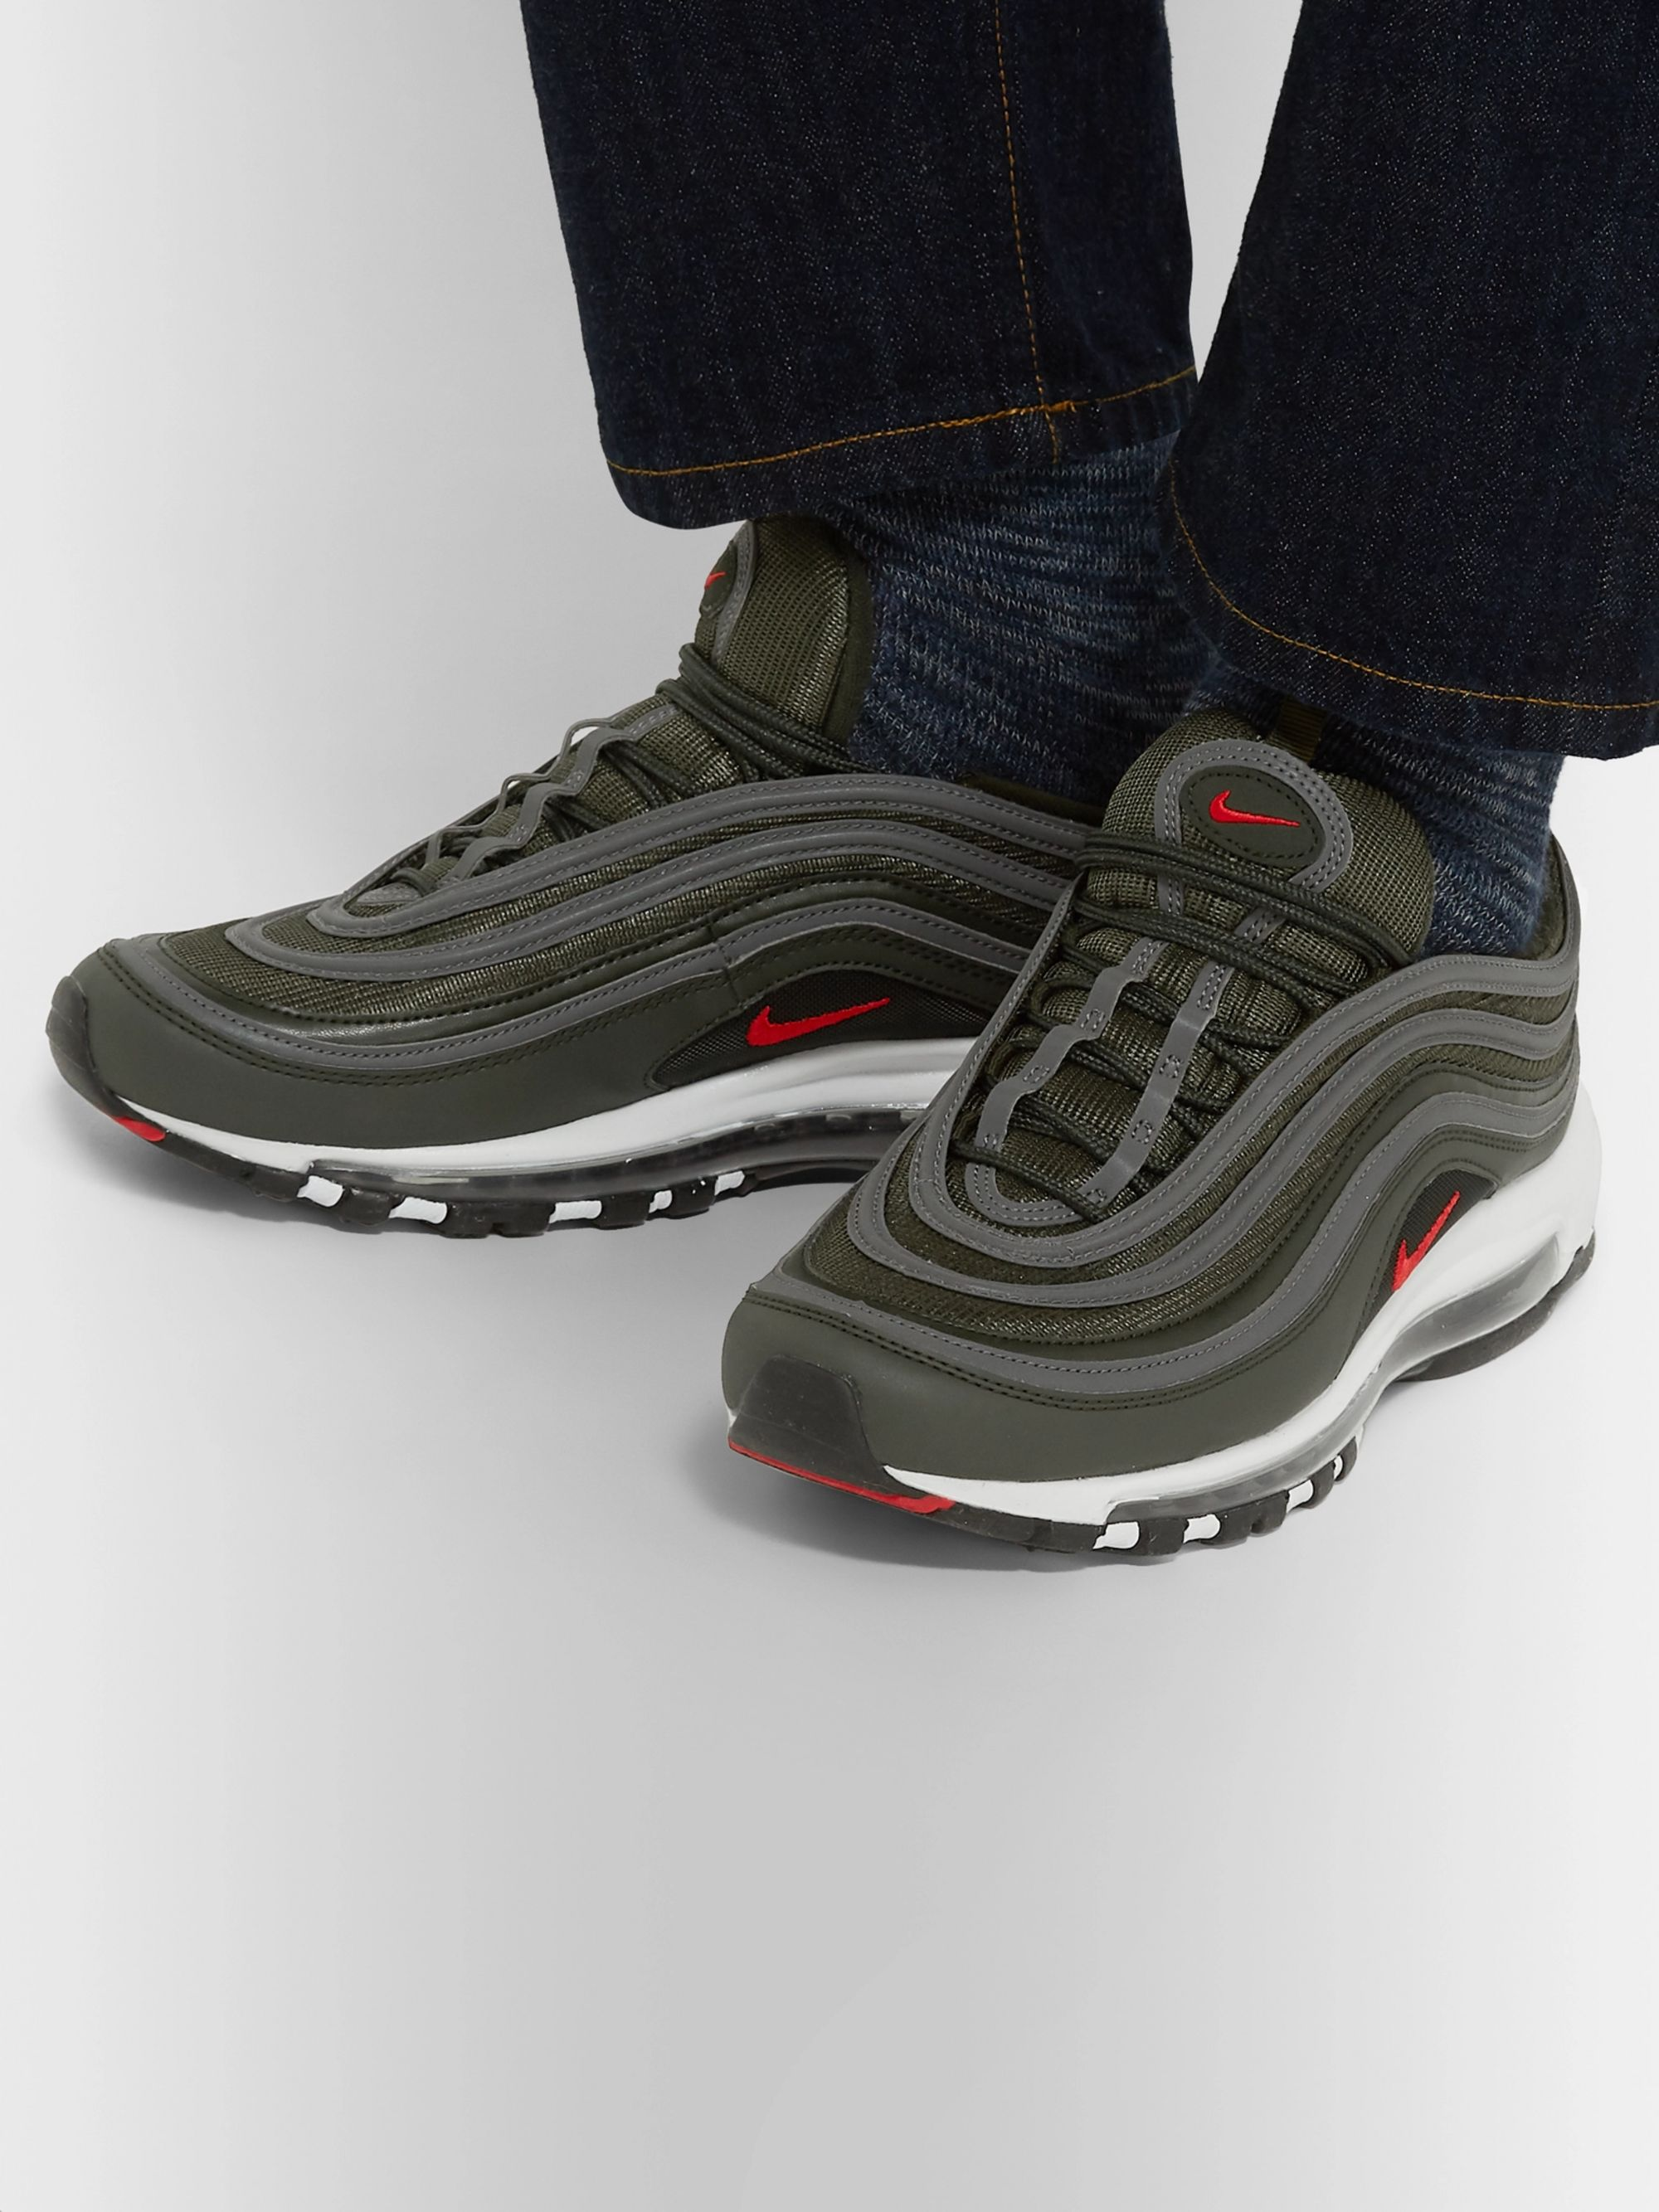 Nike Air Max 97 Cool Grey Baroque Brown Hers Offspring